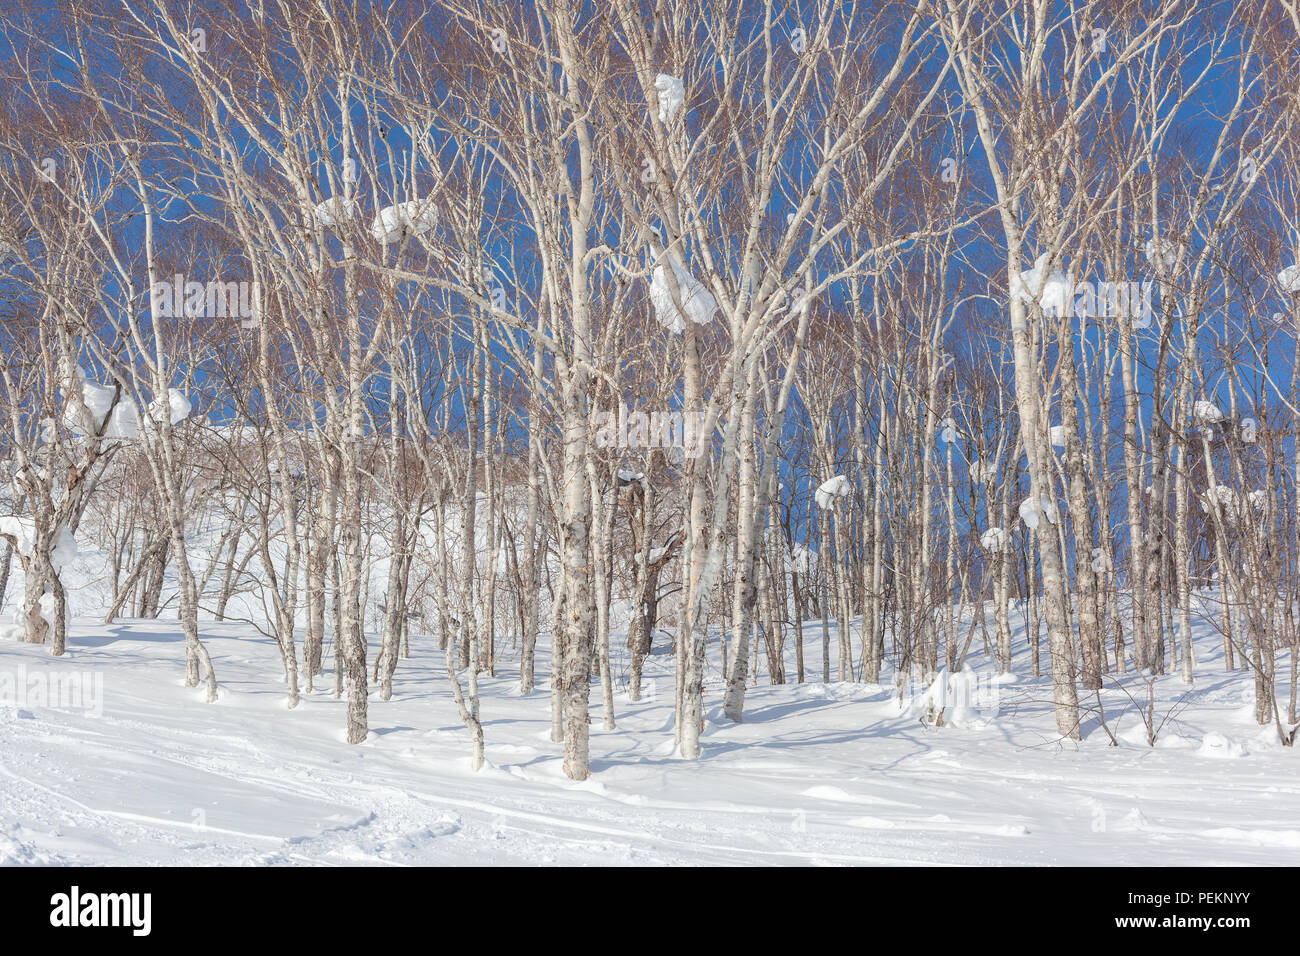 Silver birch trees with large lumps of snow up amongst the branches - Stock Image